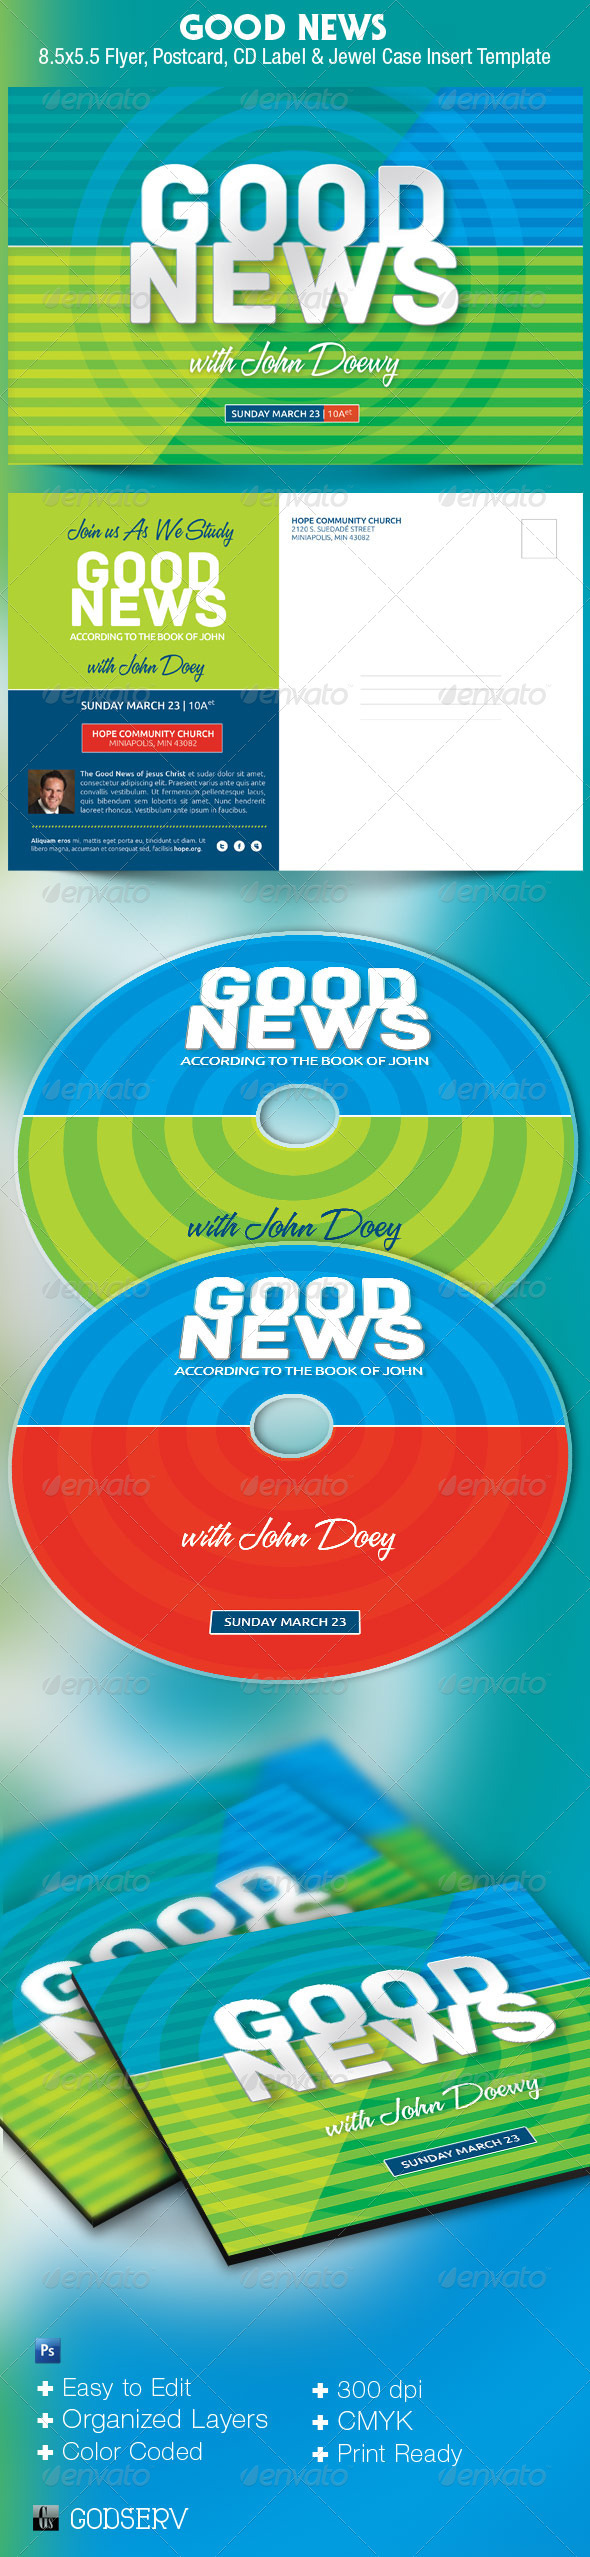 Good News Church Postcard CD Template - Church Flyers